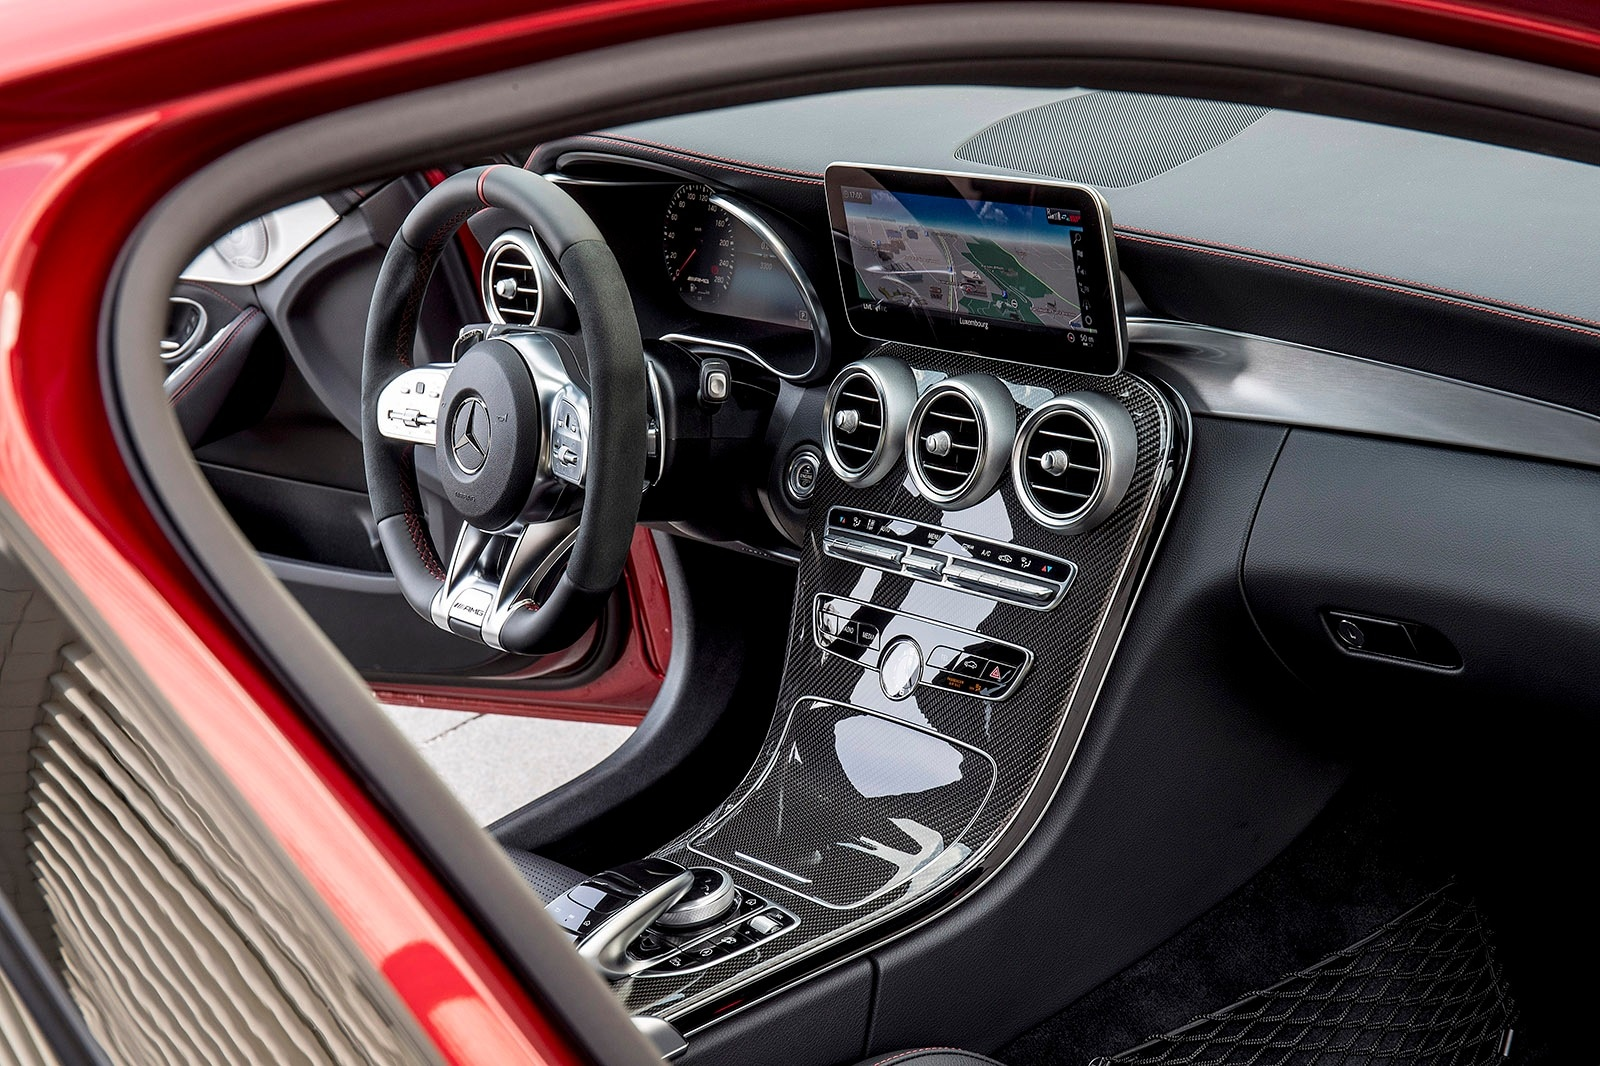 hight resolution of  cruise control buttons from other mercedes models the standard 7 inch central infotainment screen remains but a 10 3 inch screen replaces the previous